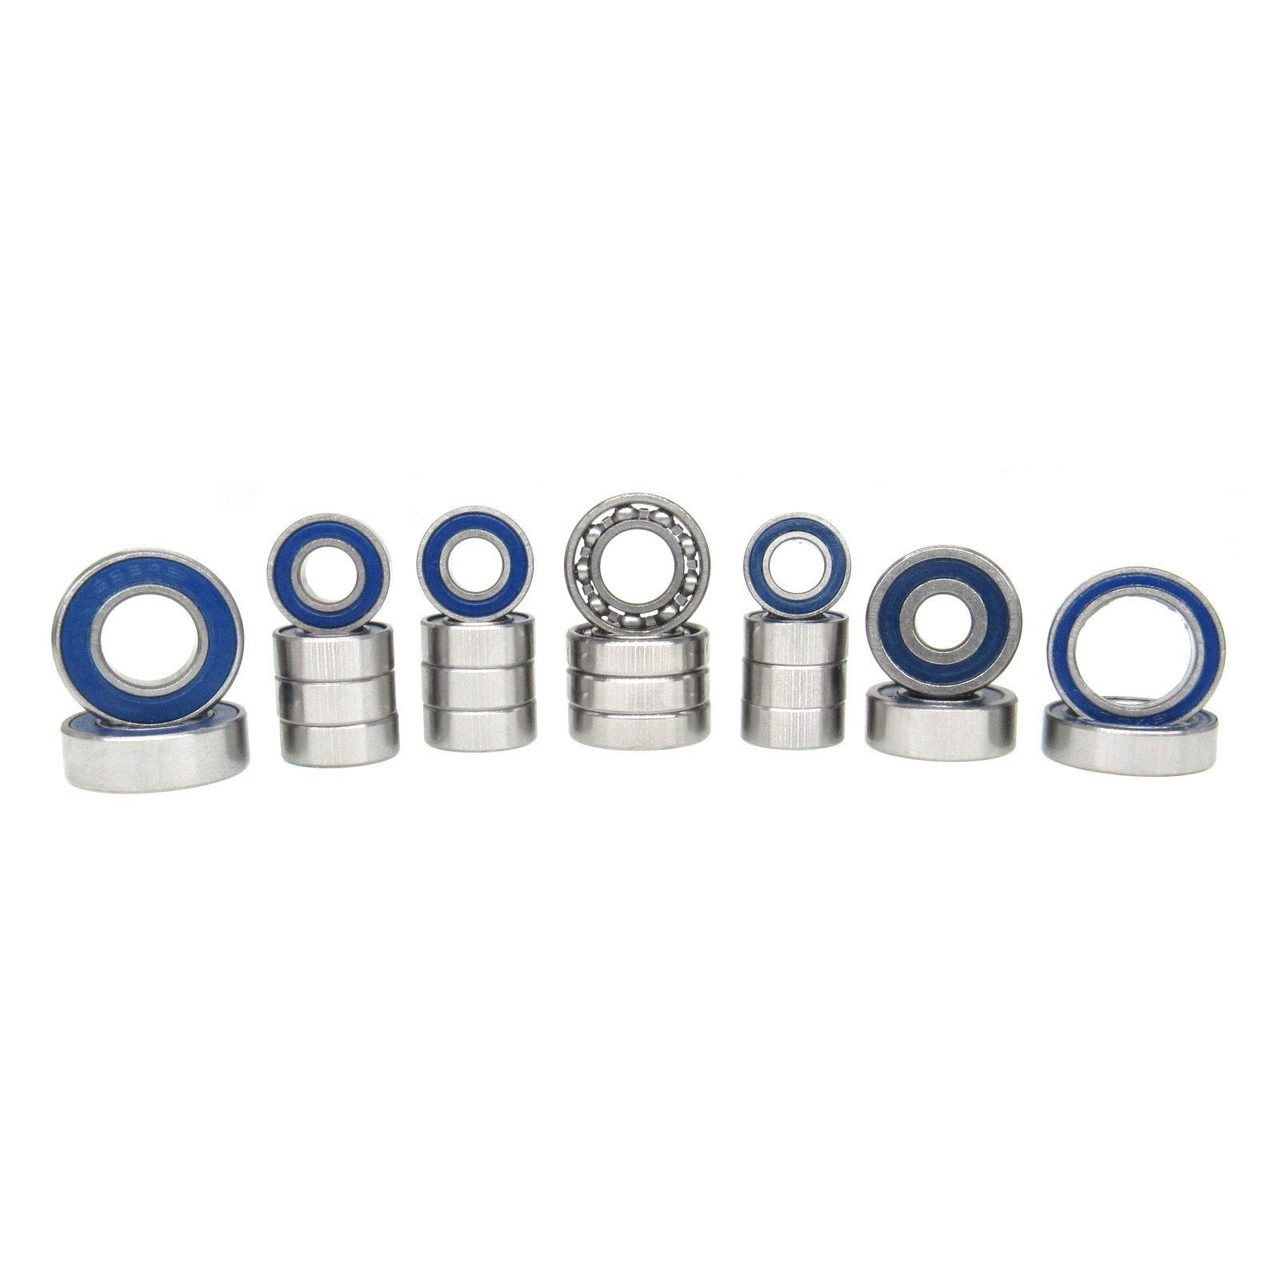 TRB RC Ball Bearing V2 Kit (22) Blue Axial SCX10 II